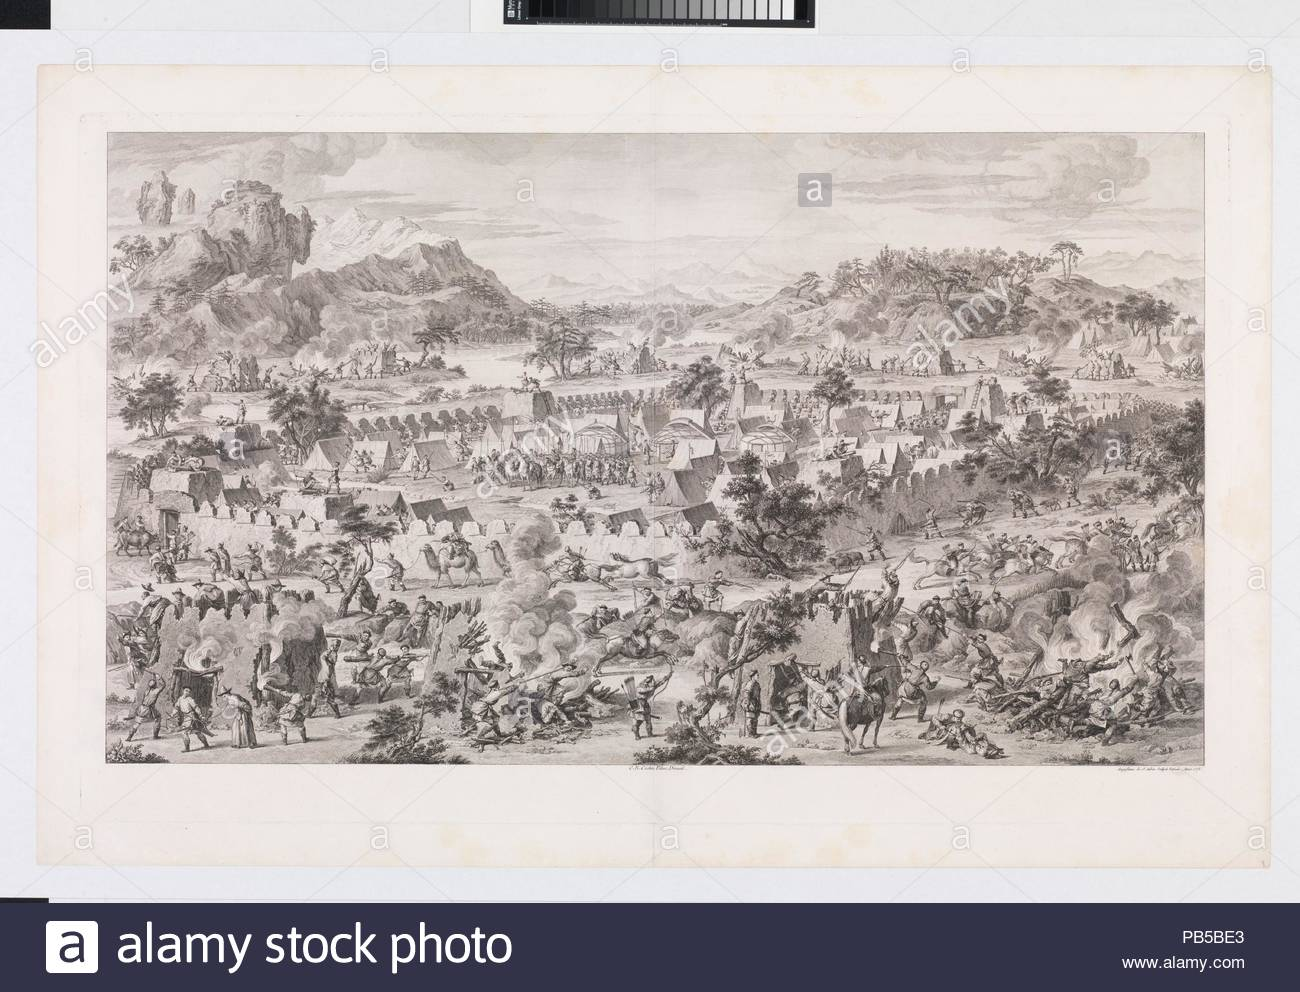 The Battle of Tonguzluq. Artist: Augustin de Saint-Aubin (French, Paris 1736-1807 Paris); after Giuseppe Castiglione (Italian, Milan 1688-1766 Beijing); (direxit) Charles Nicolas Cochin II (French, Paris 1715-1790 Paris). Dimensions: Sheet: 39 5/8 × 25 13/16 in. (100.7 × 65.5 cm)  Plate: 37 × 22 3/4 in. (94 × 57.8 cm). Series/Portfolio: The Conquests of the Emperor of China  (Les Conquêtes de l'Empereur de la Chine). Date: 1773.  This print depicts the 1758 Battle of Tonguzluq with Qing soldiers firing cannons and using guns and arrows to attack the enemy within a fortified encampement filled  - Stock Image